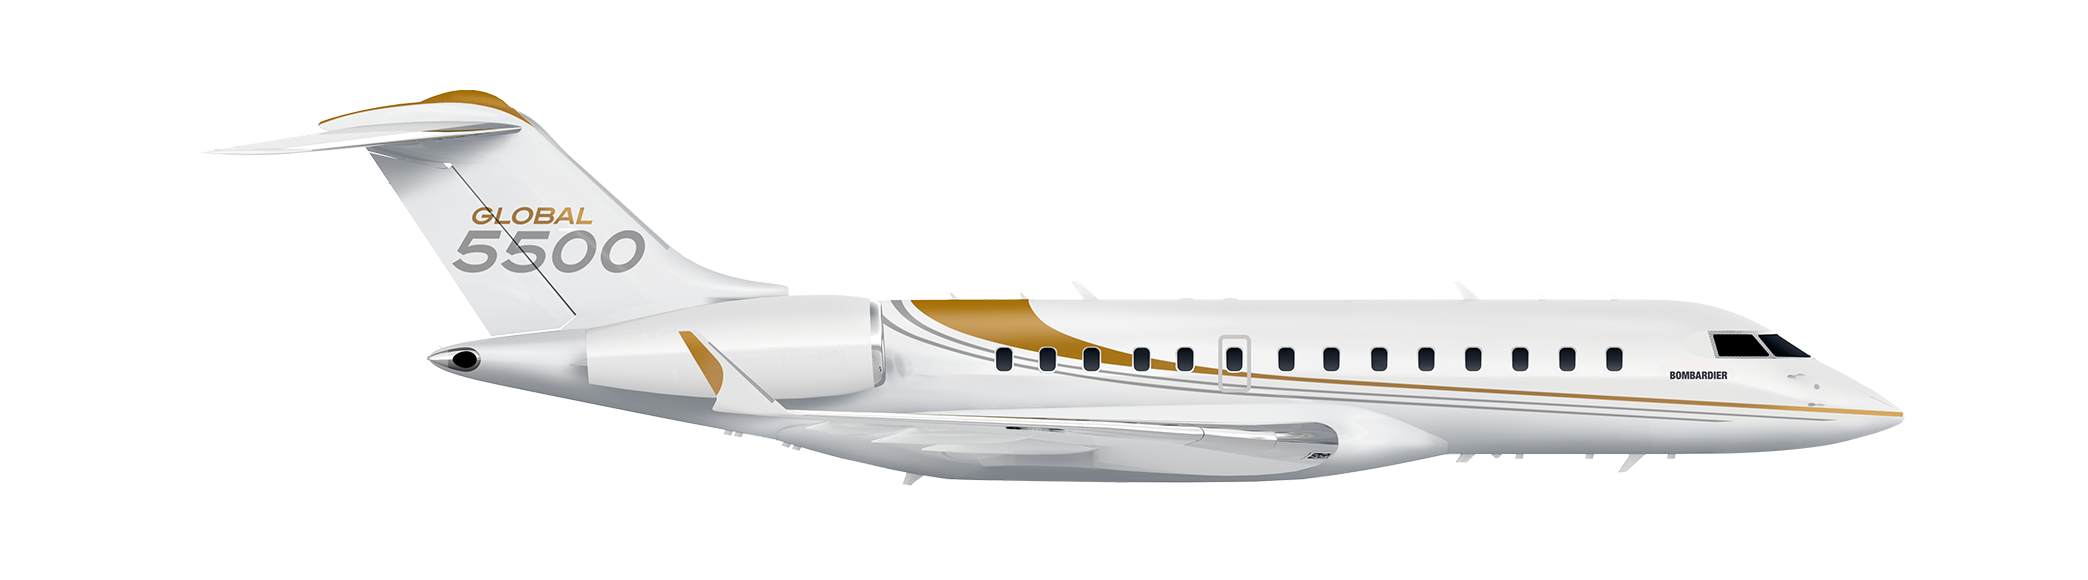 Global 5500 side silhouette